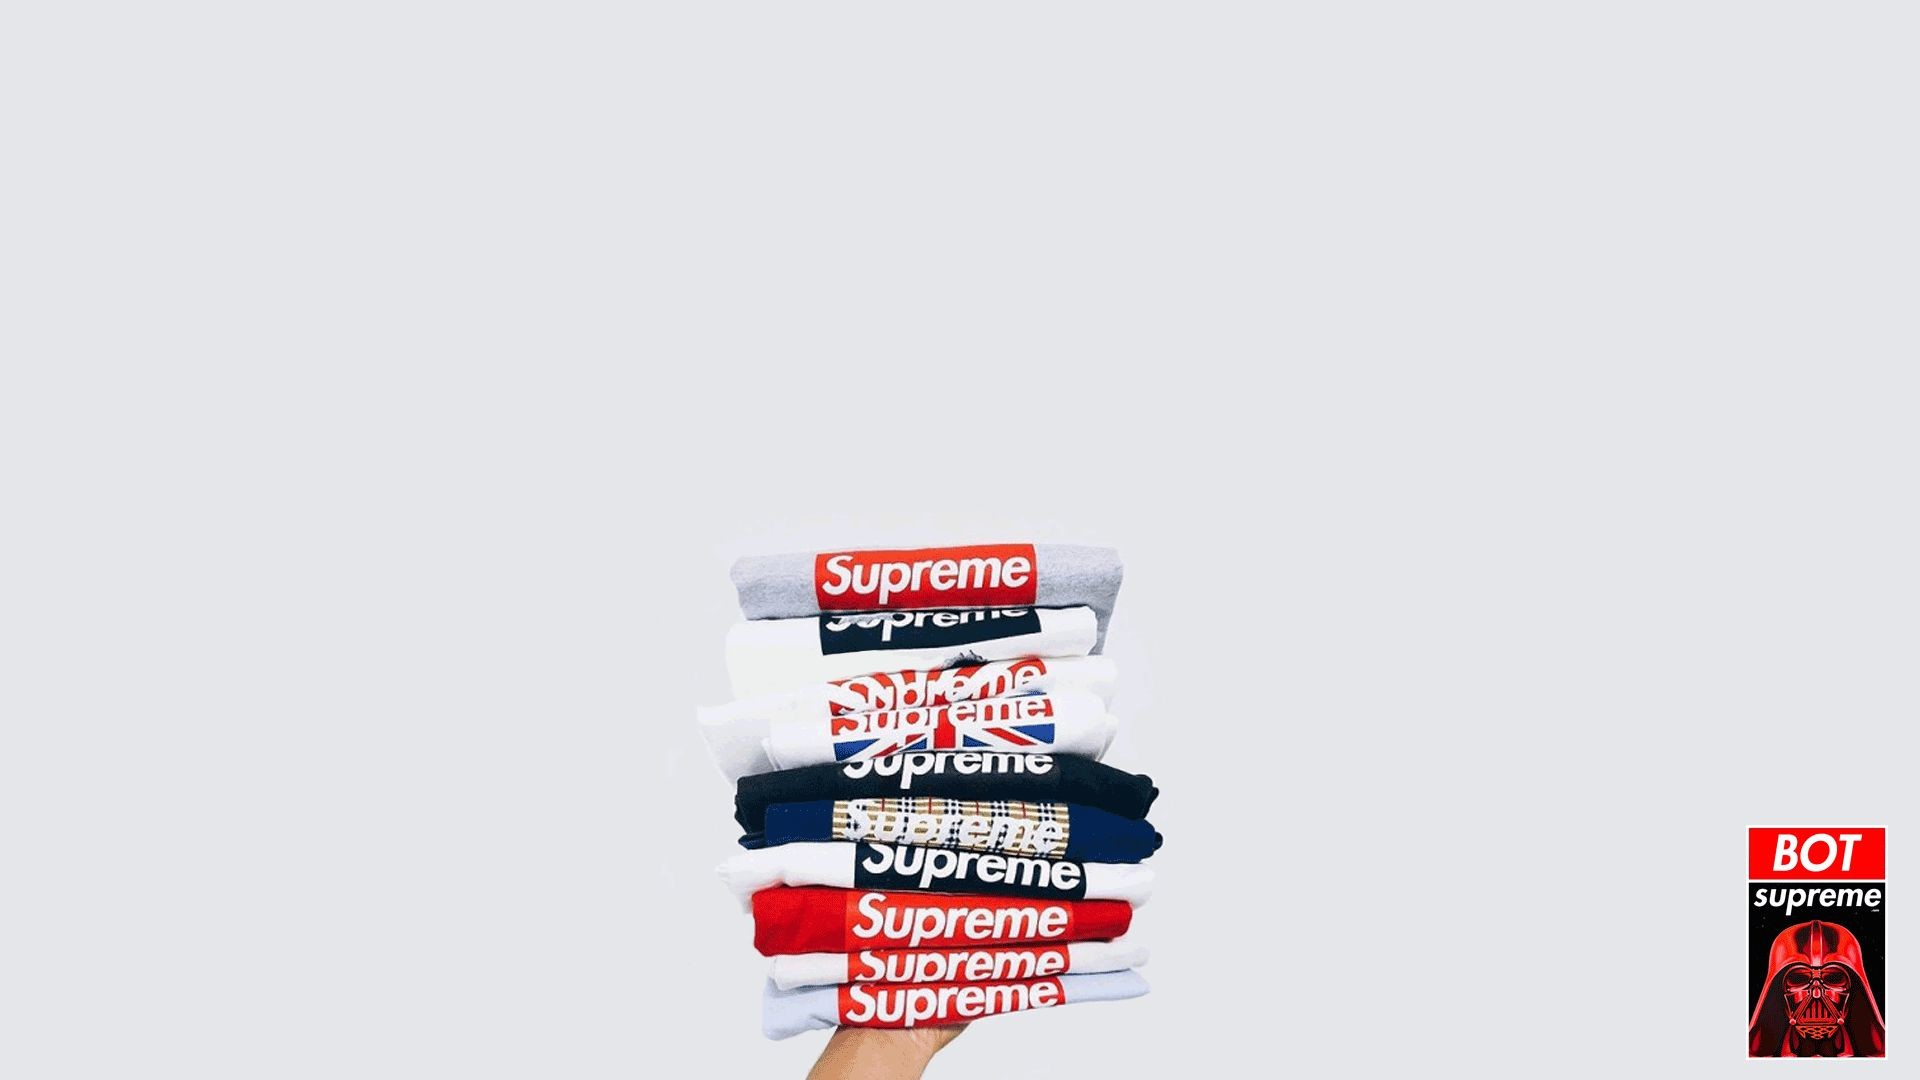 1920x1080 Supreme Wallpapers Hd Is Cool Wallpapers Supreme Wallpaper For Mac 1920x1080 Wallpaper Teahub Io